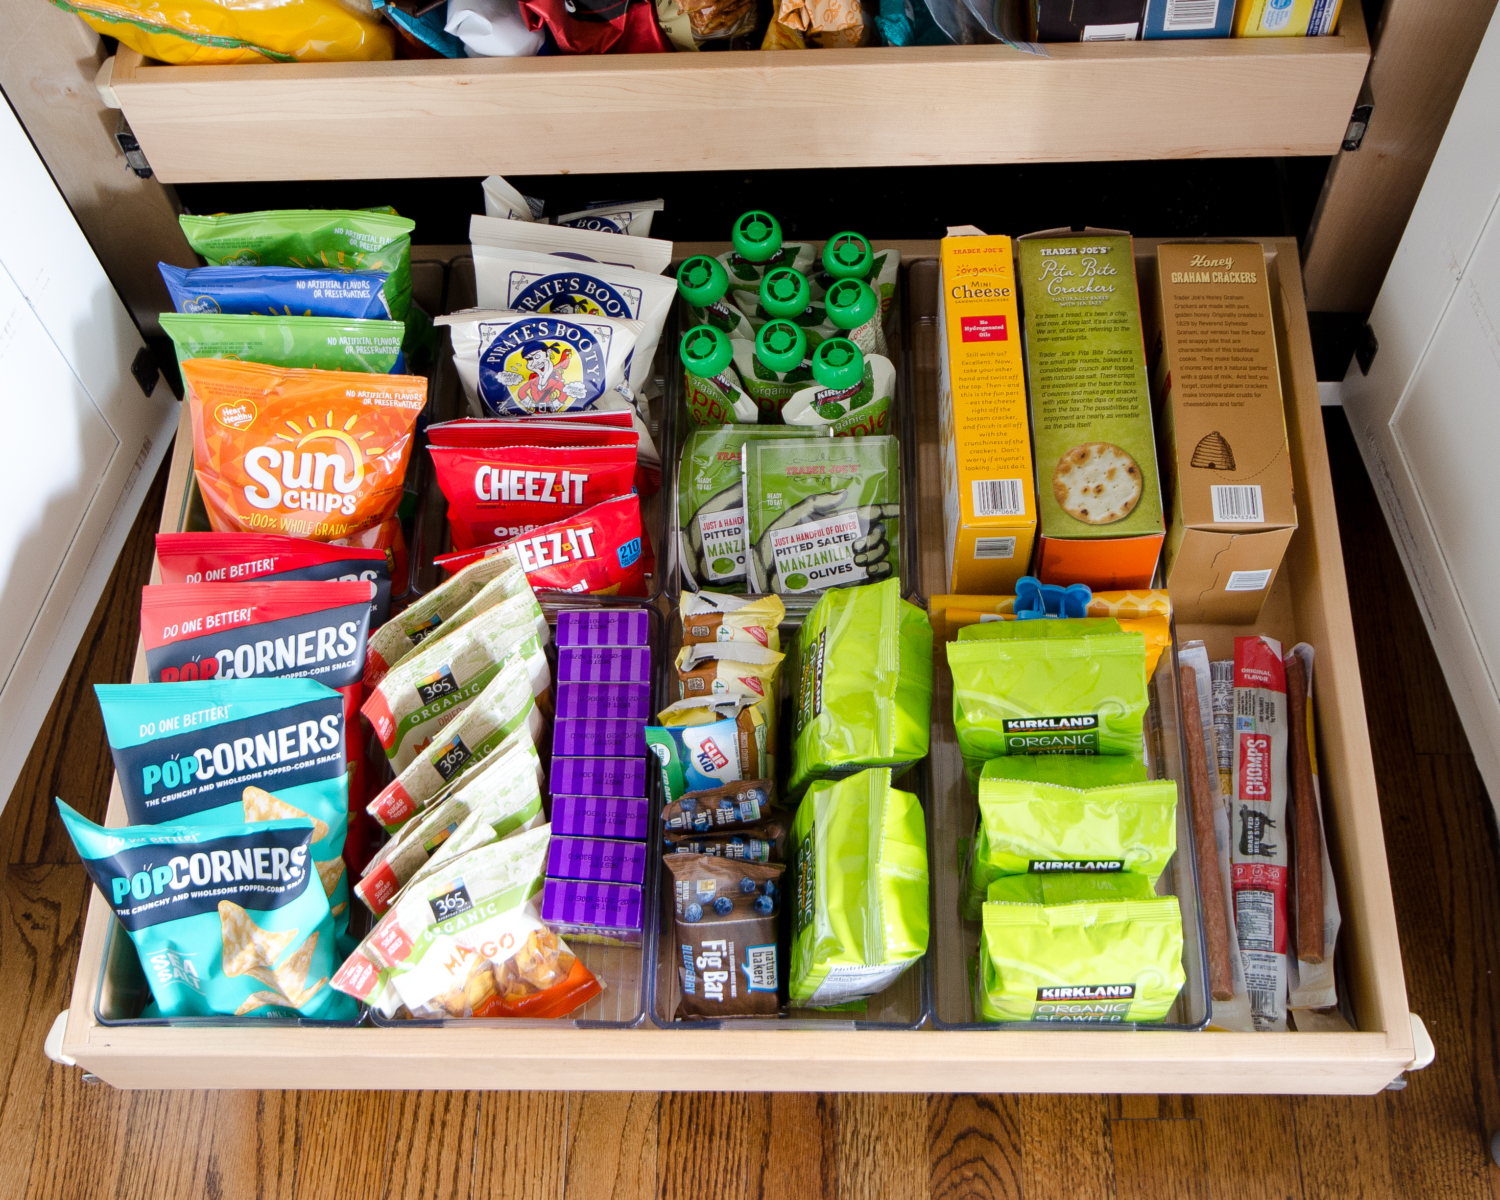 Easy organization ideas for the pantry and kitchen